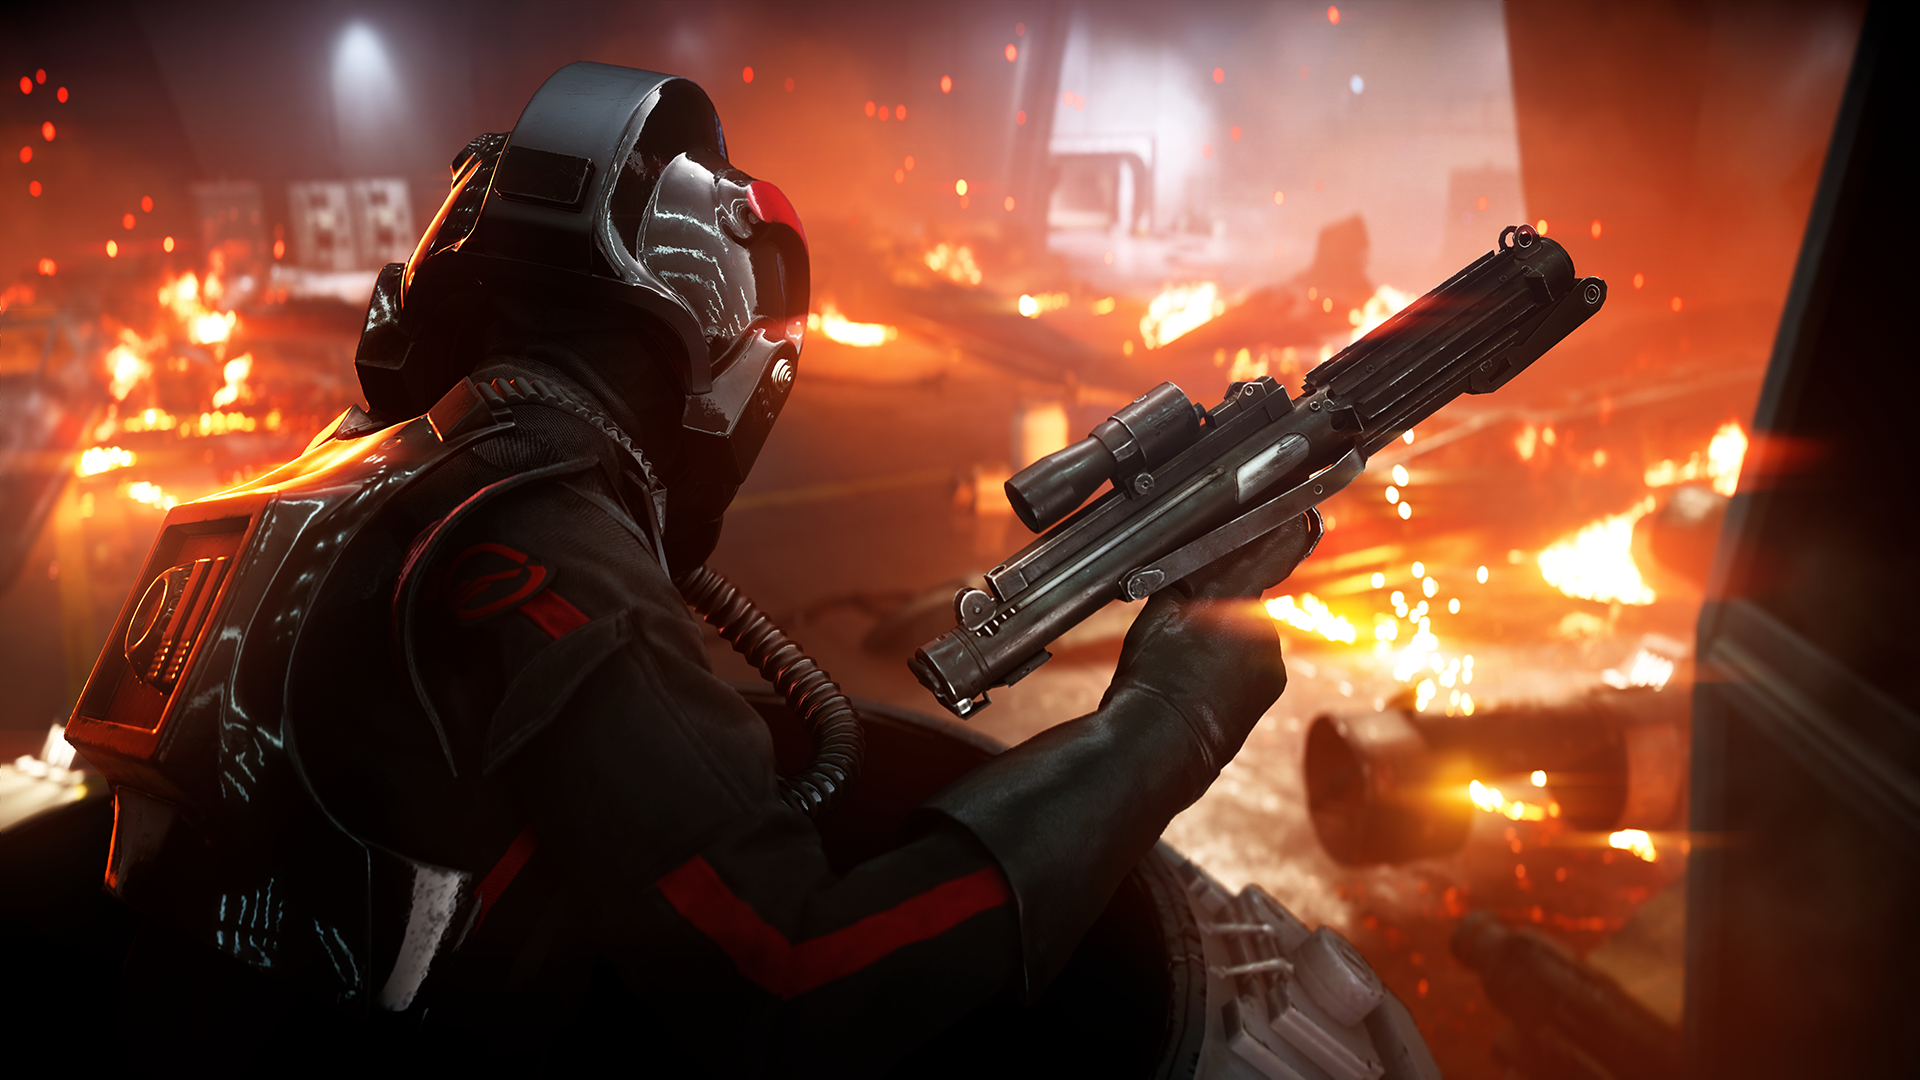 Star Wars: Battlefront II campaign will be robust